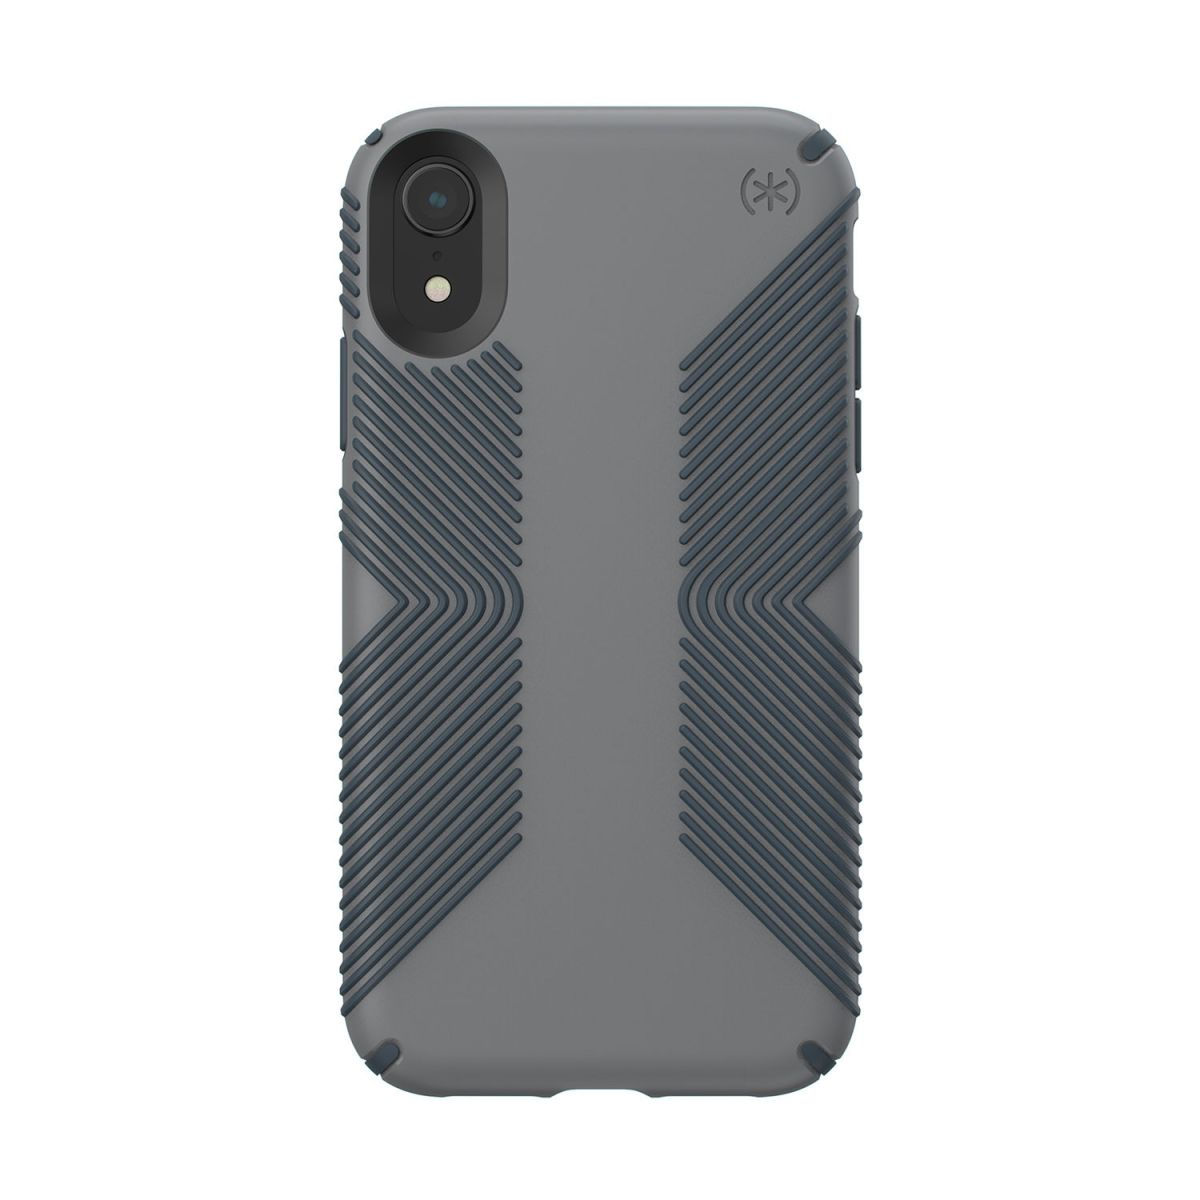 Carcasa iPhone XR Presidio Grip gri